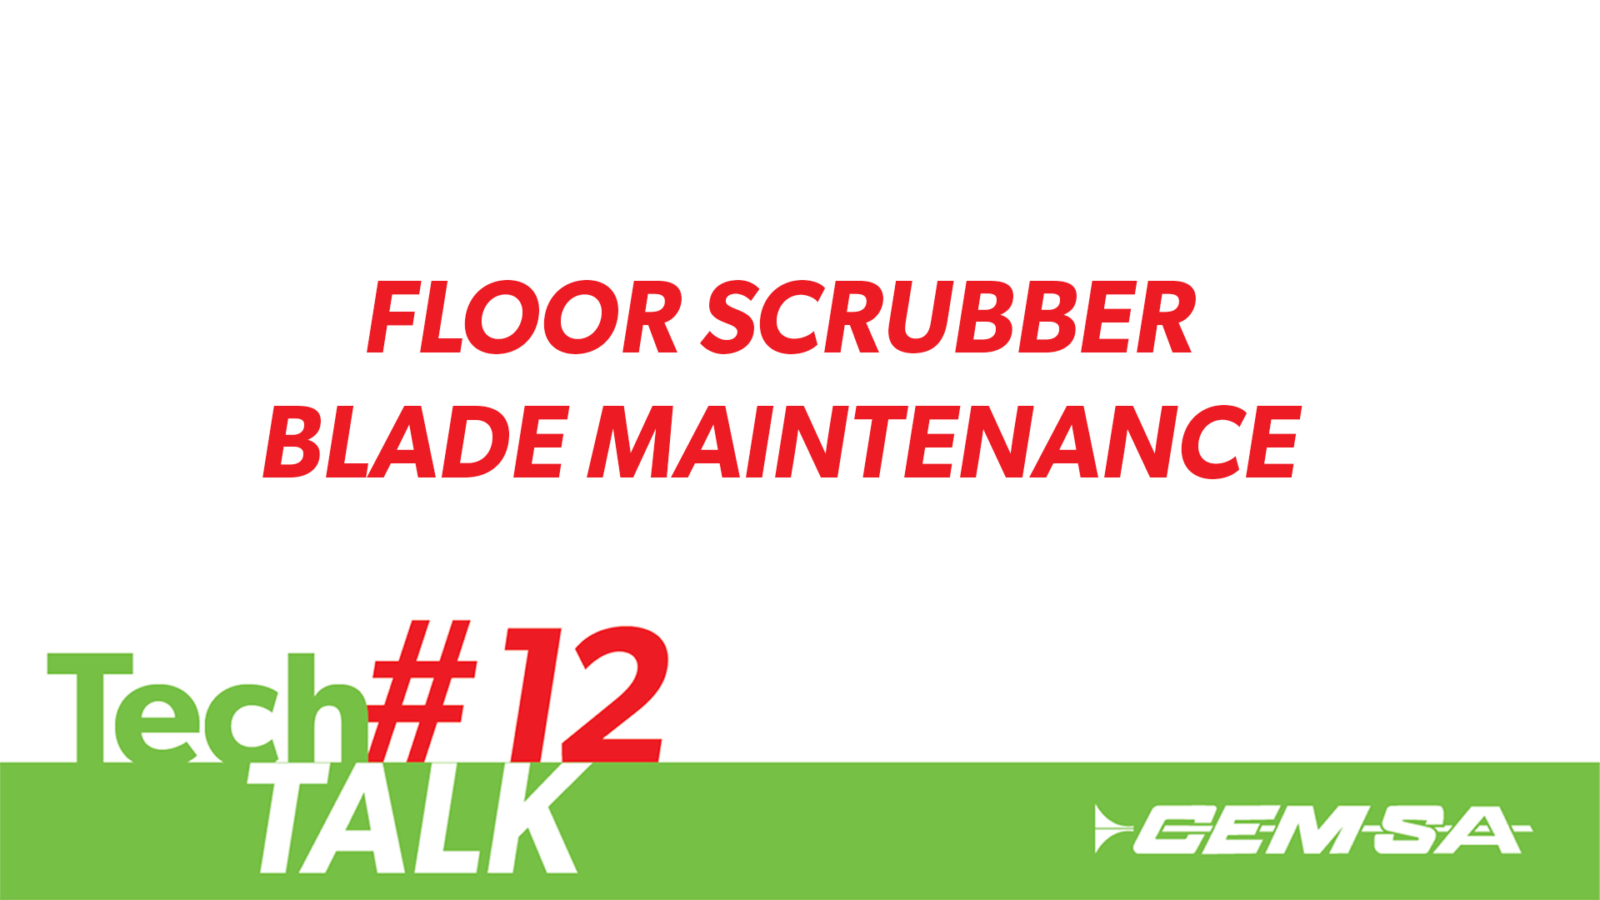 TechTalk #12-  Floor Scrubber Blade Maintenance